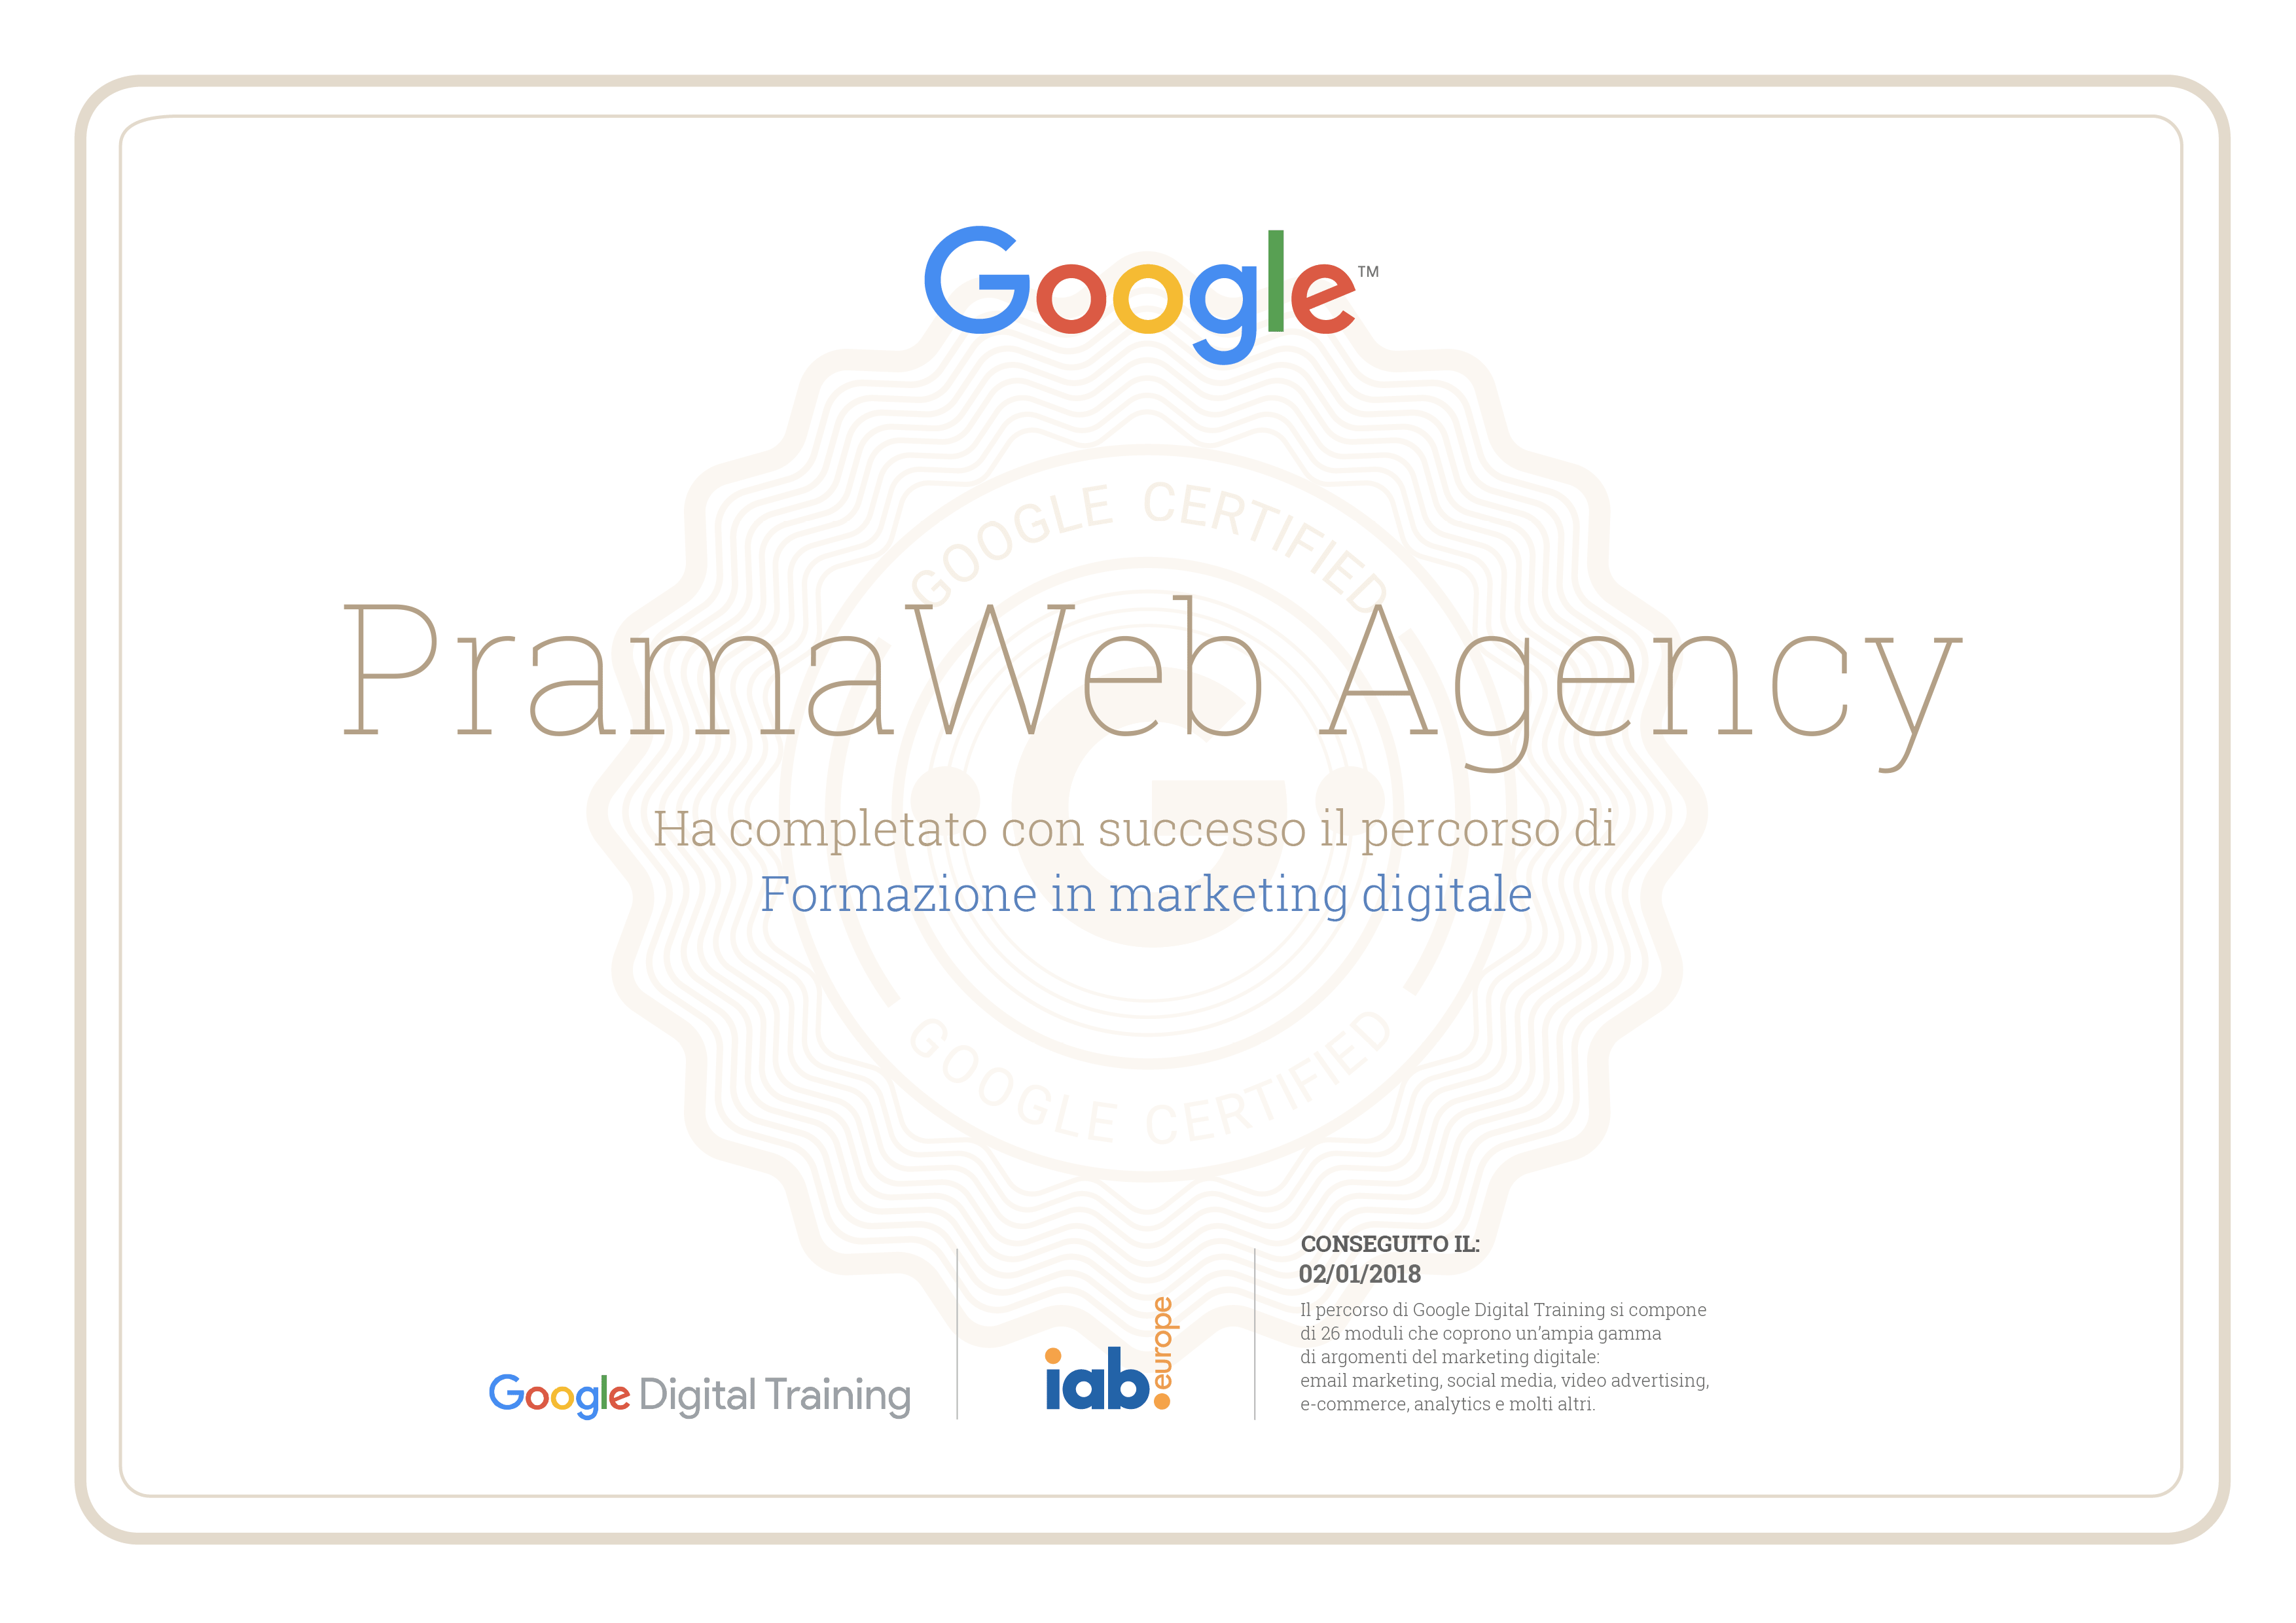 Google Digital Training - Certificato